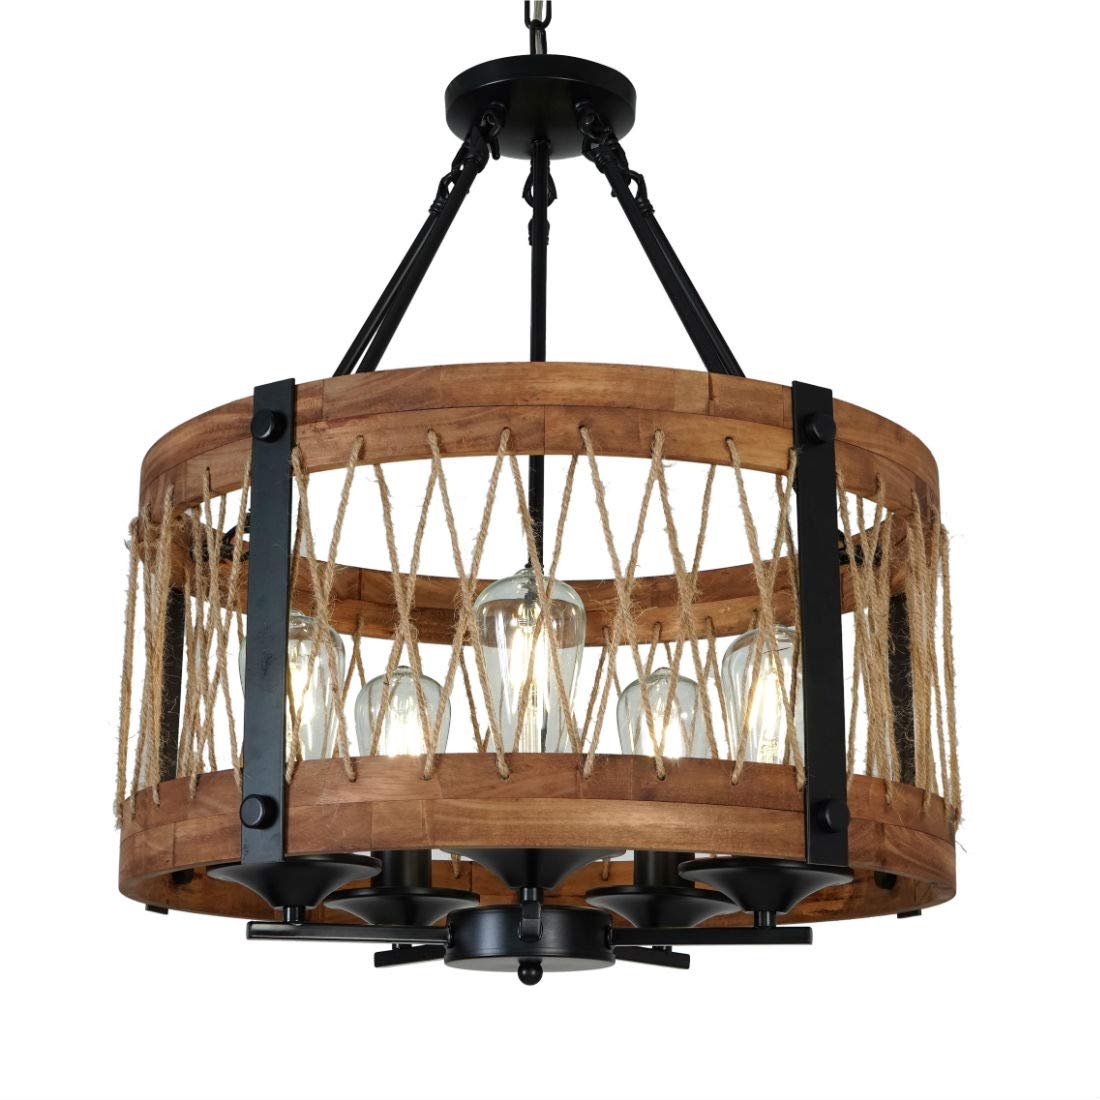 Deralan modern rustic chandelier round wood five lights farmhouse chandeliers wooden island pendant lighting fixture rope metal retro ceiling lights